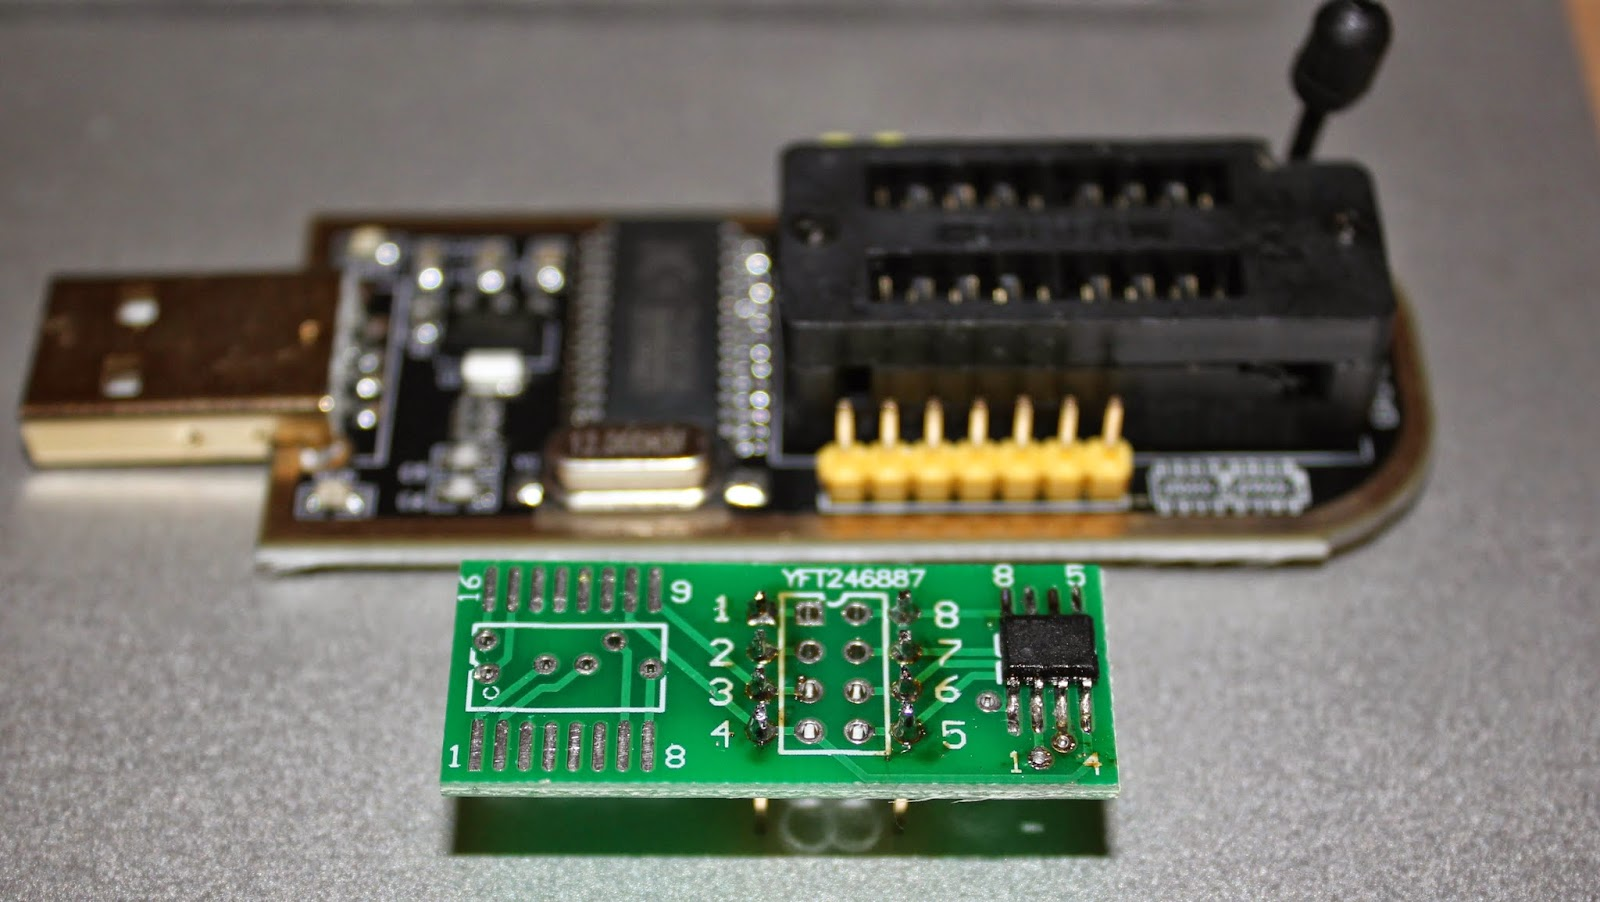 sacd-ripper: dumped the LaCie eprom